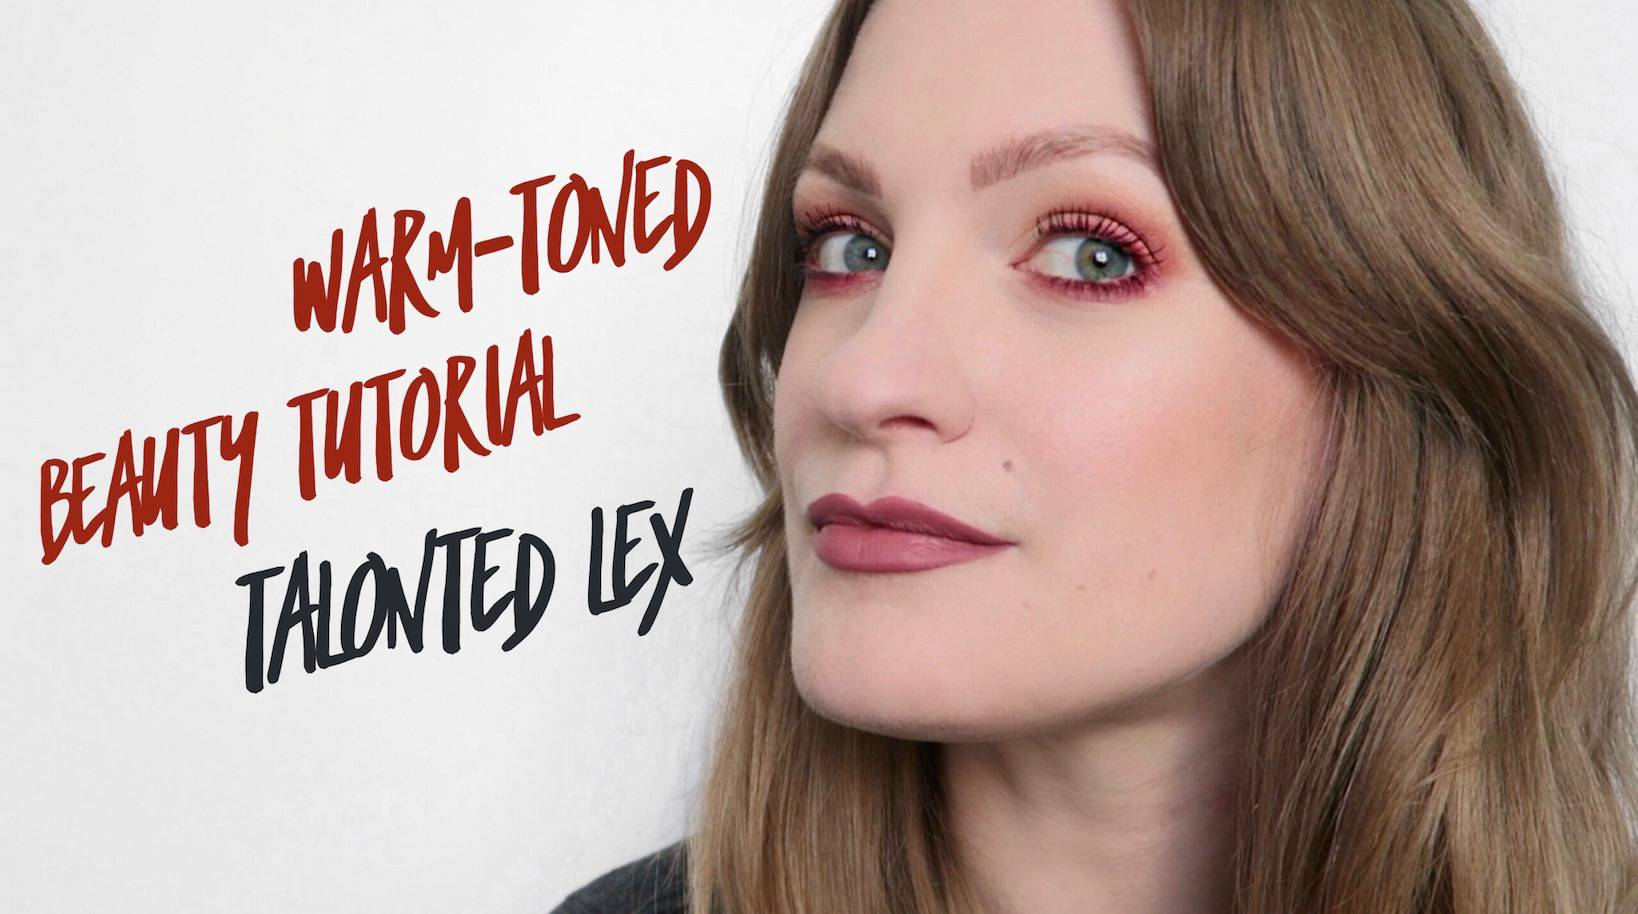 Warm-Toned Eye Beauty Tutorial - if you have green/blue eyes, this eye make up will look incredible on you!